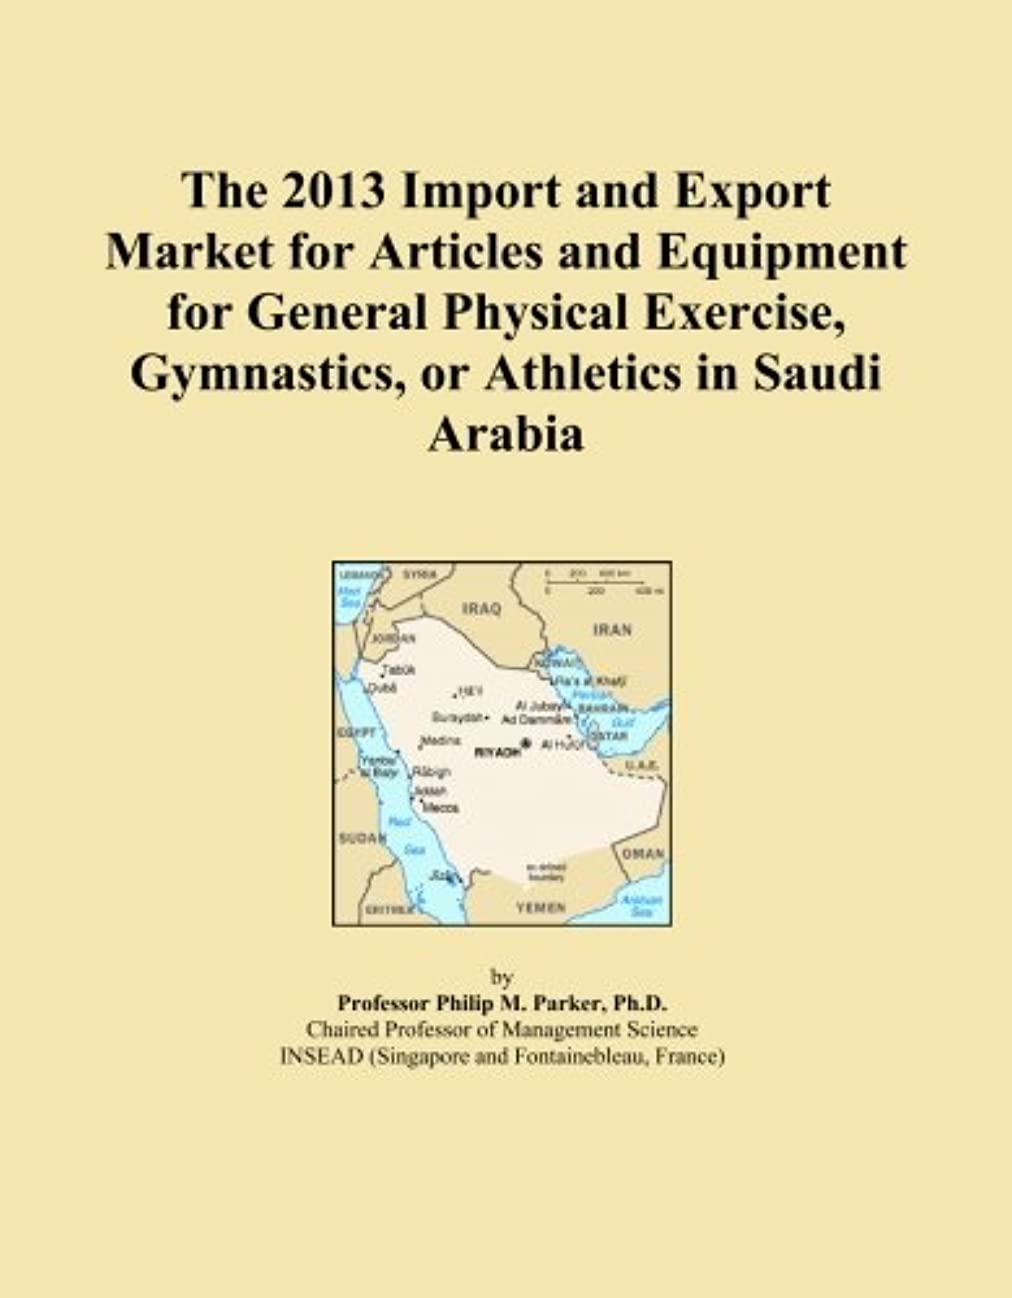 上陸細分化する歩行者The 2013 Import and Export Market for Articles and Equipment for General Physical Exercise, Gymnastics, or Athletics in Saudi Arabia